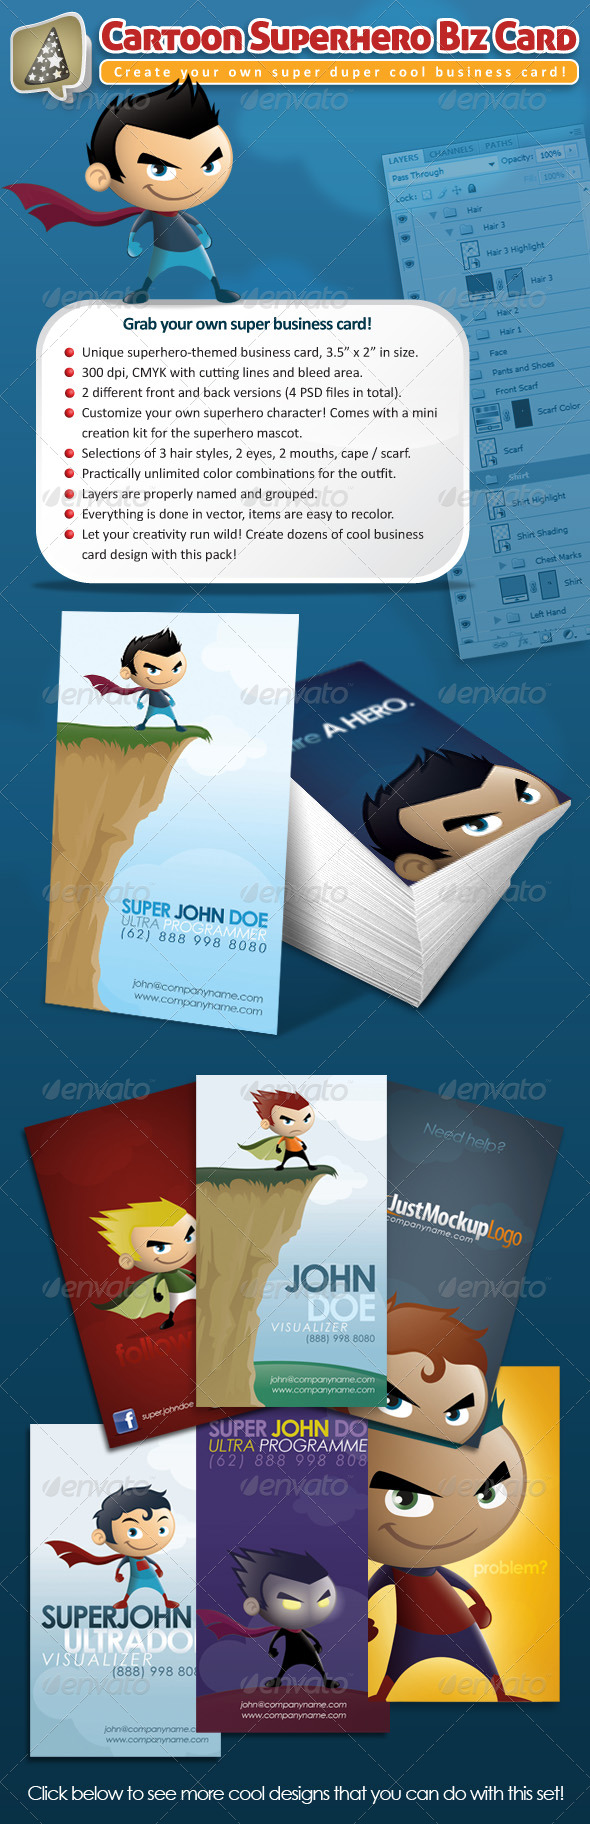 Cartoon Superhero Business Card Maker - Creative Business Cards